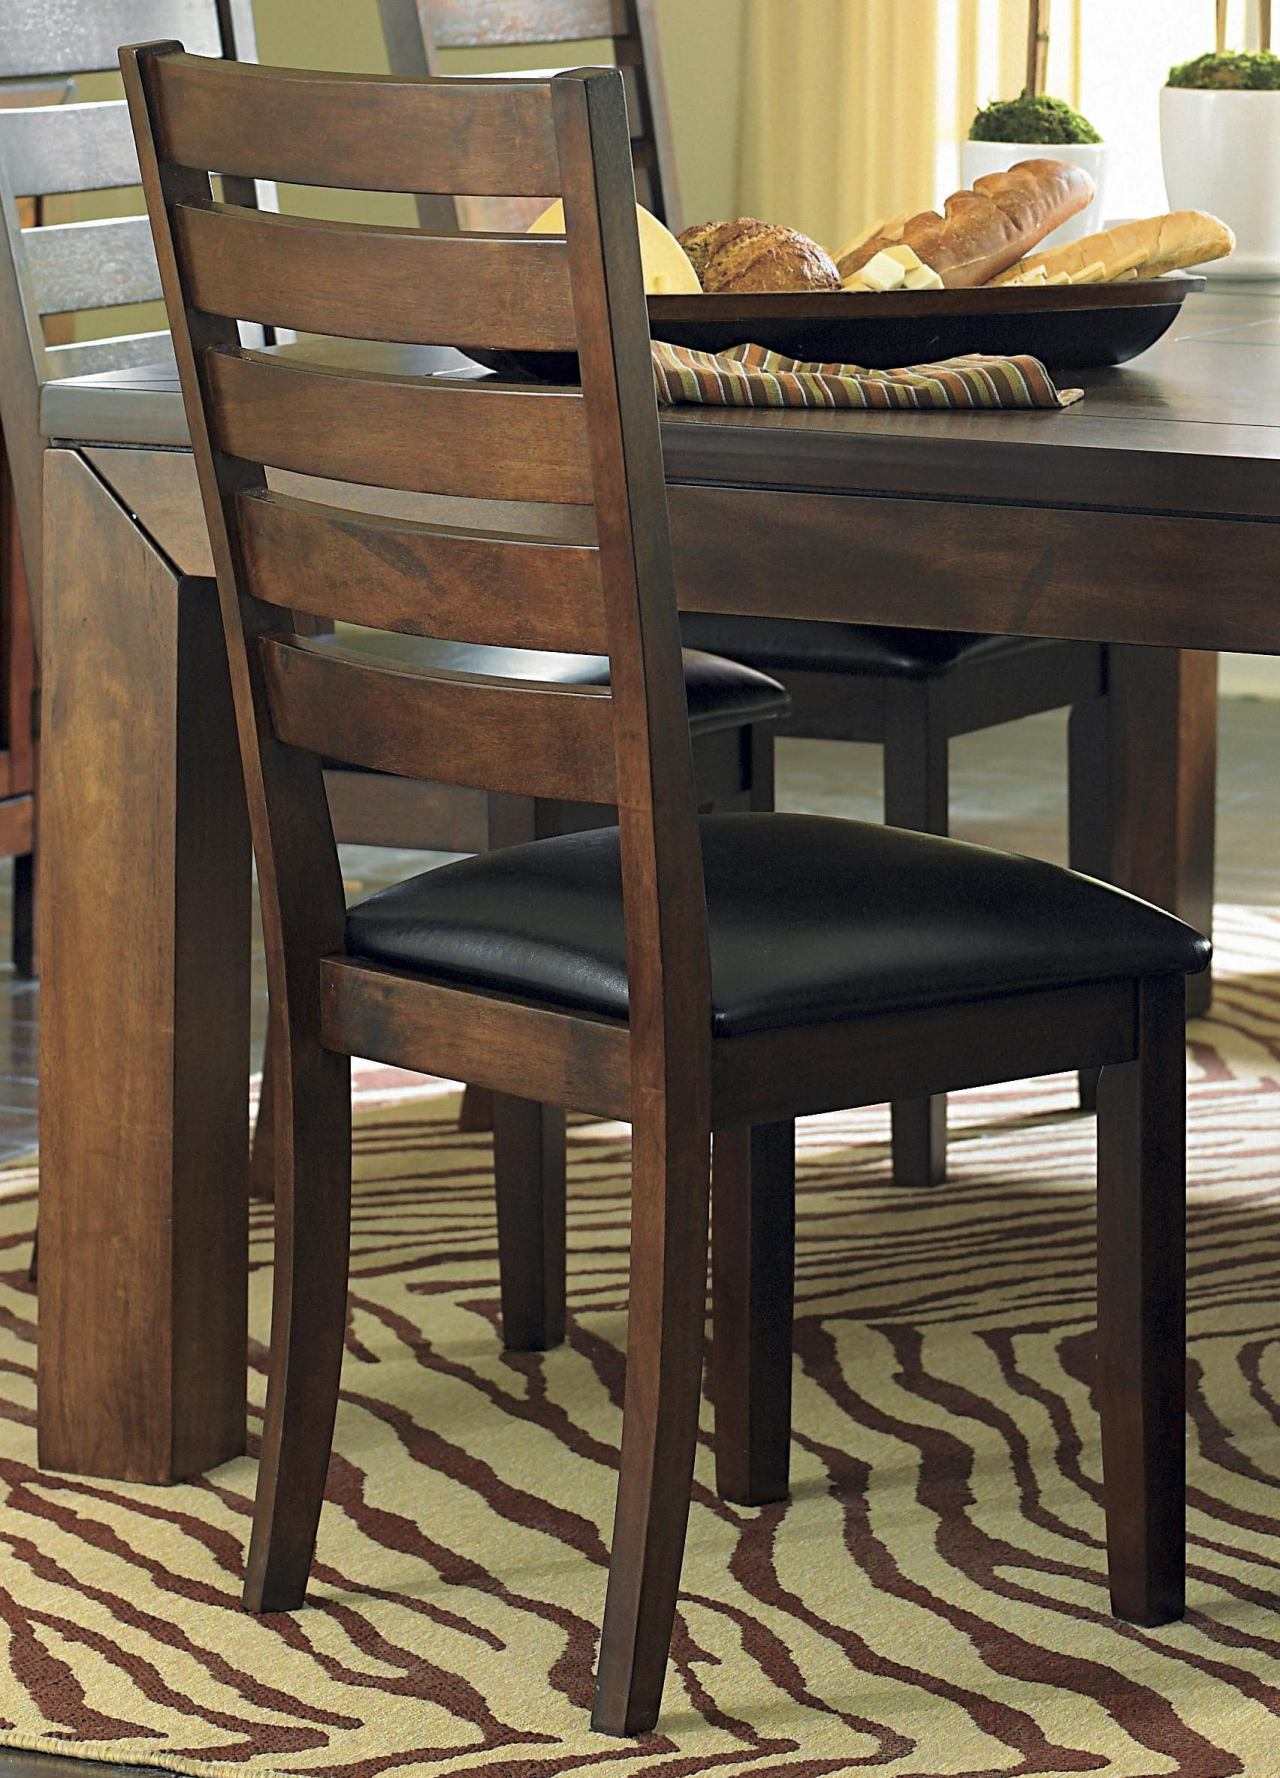 Homelegance Eagleville Side Chair in Warm Brown Cherry (set of 2) 5346S